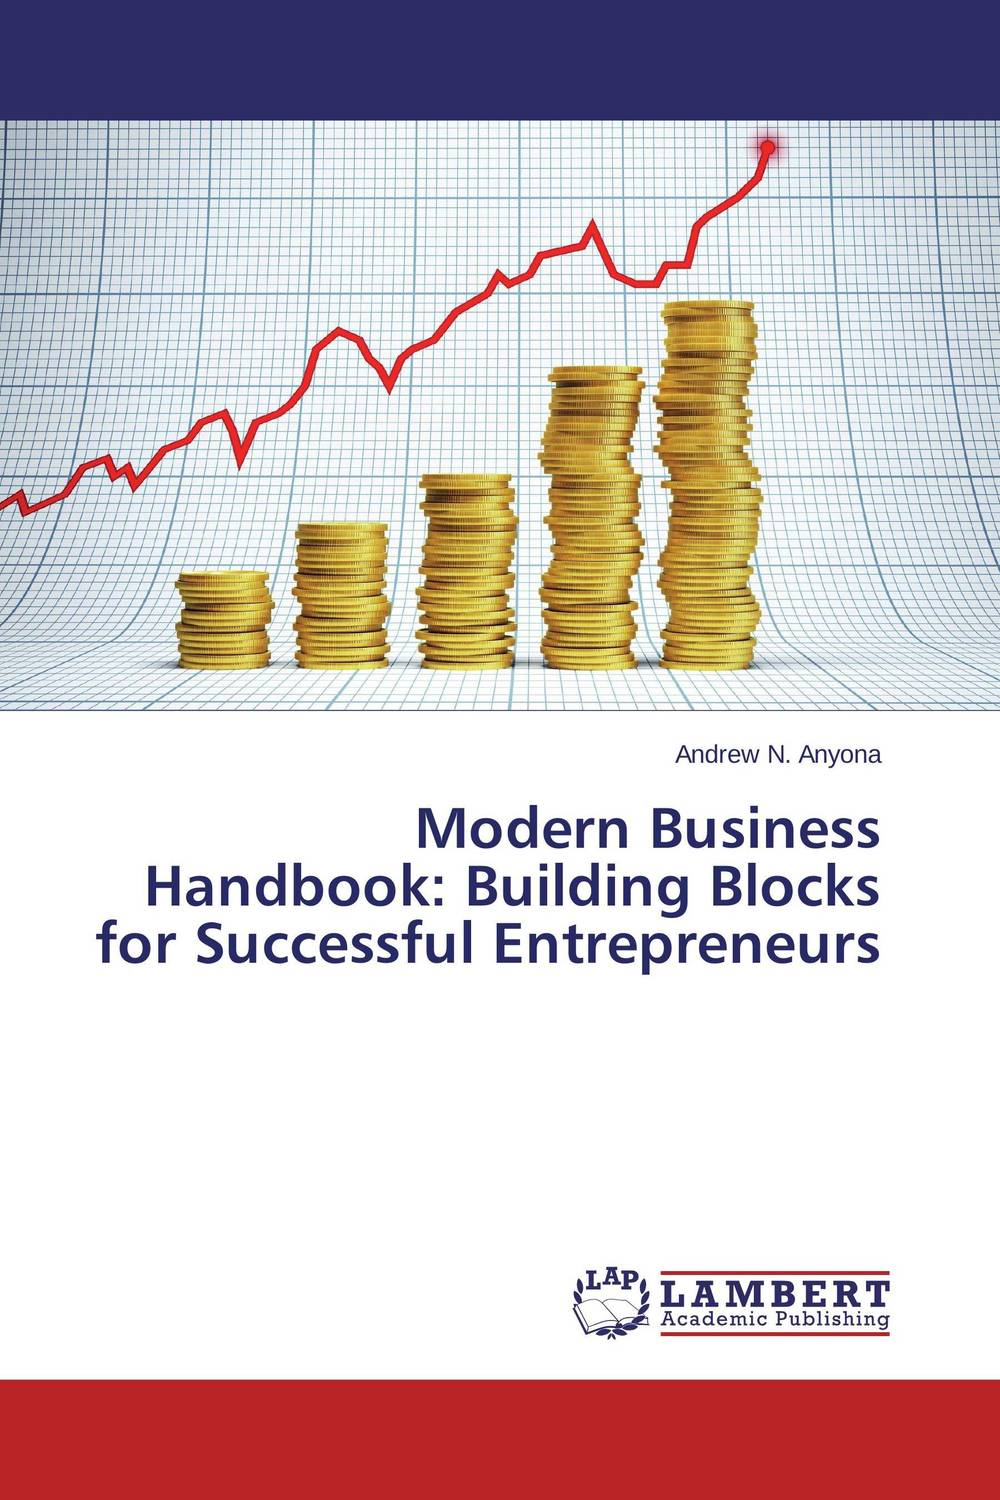 Фото Modern Business Handbook: Building Blocks for Successful Entrepreneurs finance and investments